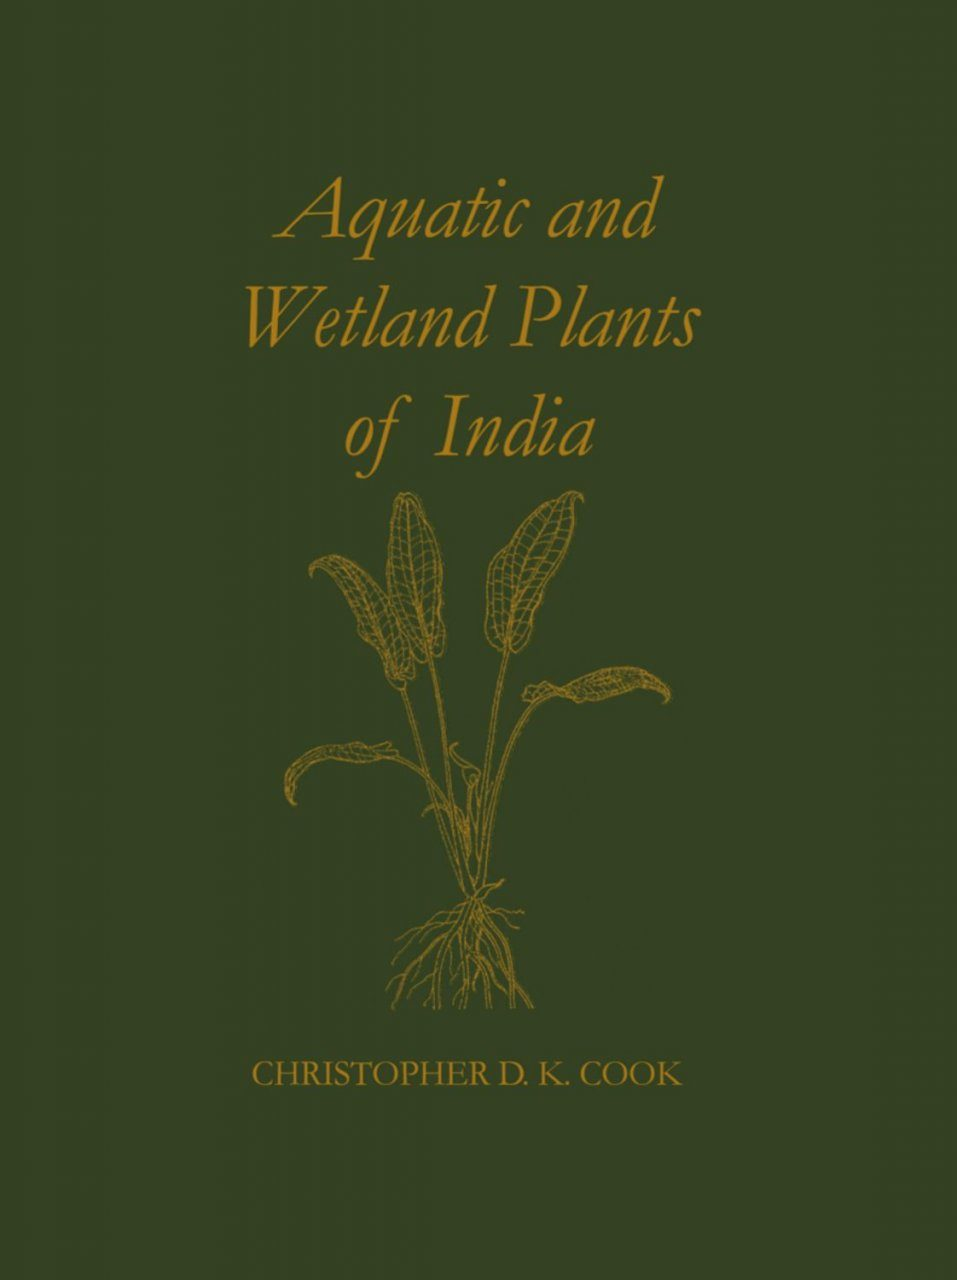 Aquatic and Wetland Plants of India